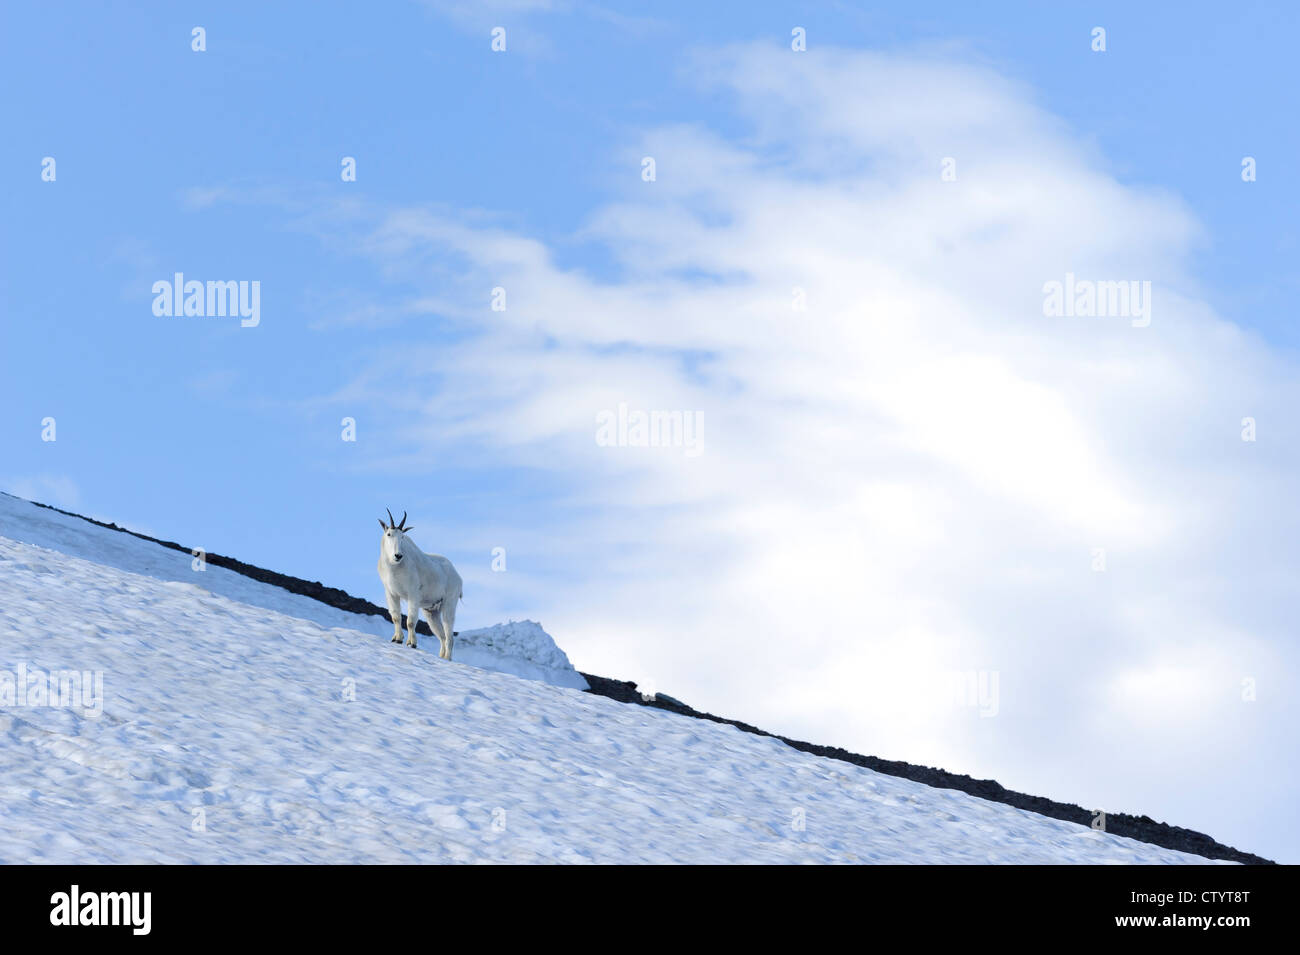 A mountain goat (Oreamnos americanus) stands on top of a snow field in Glacier National Park, Montana - Stock Image